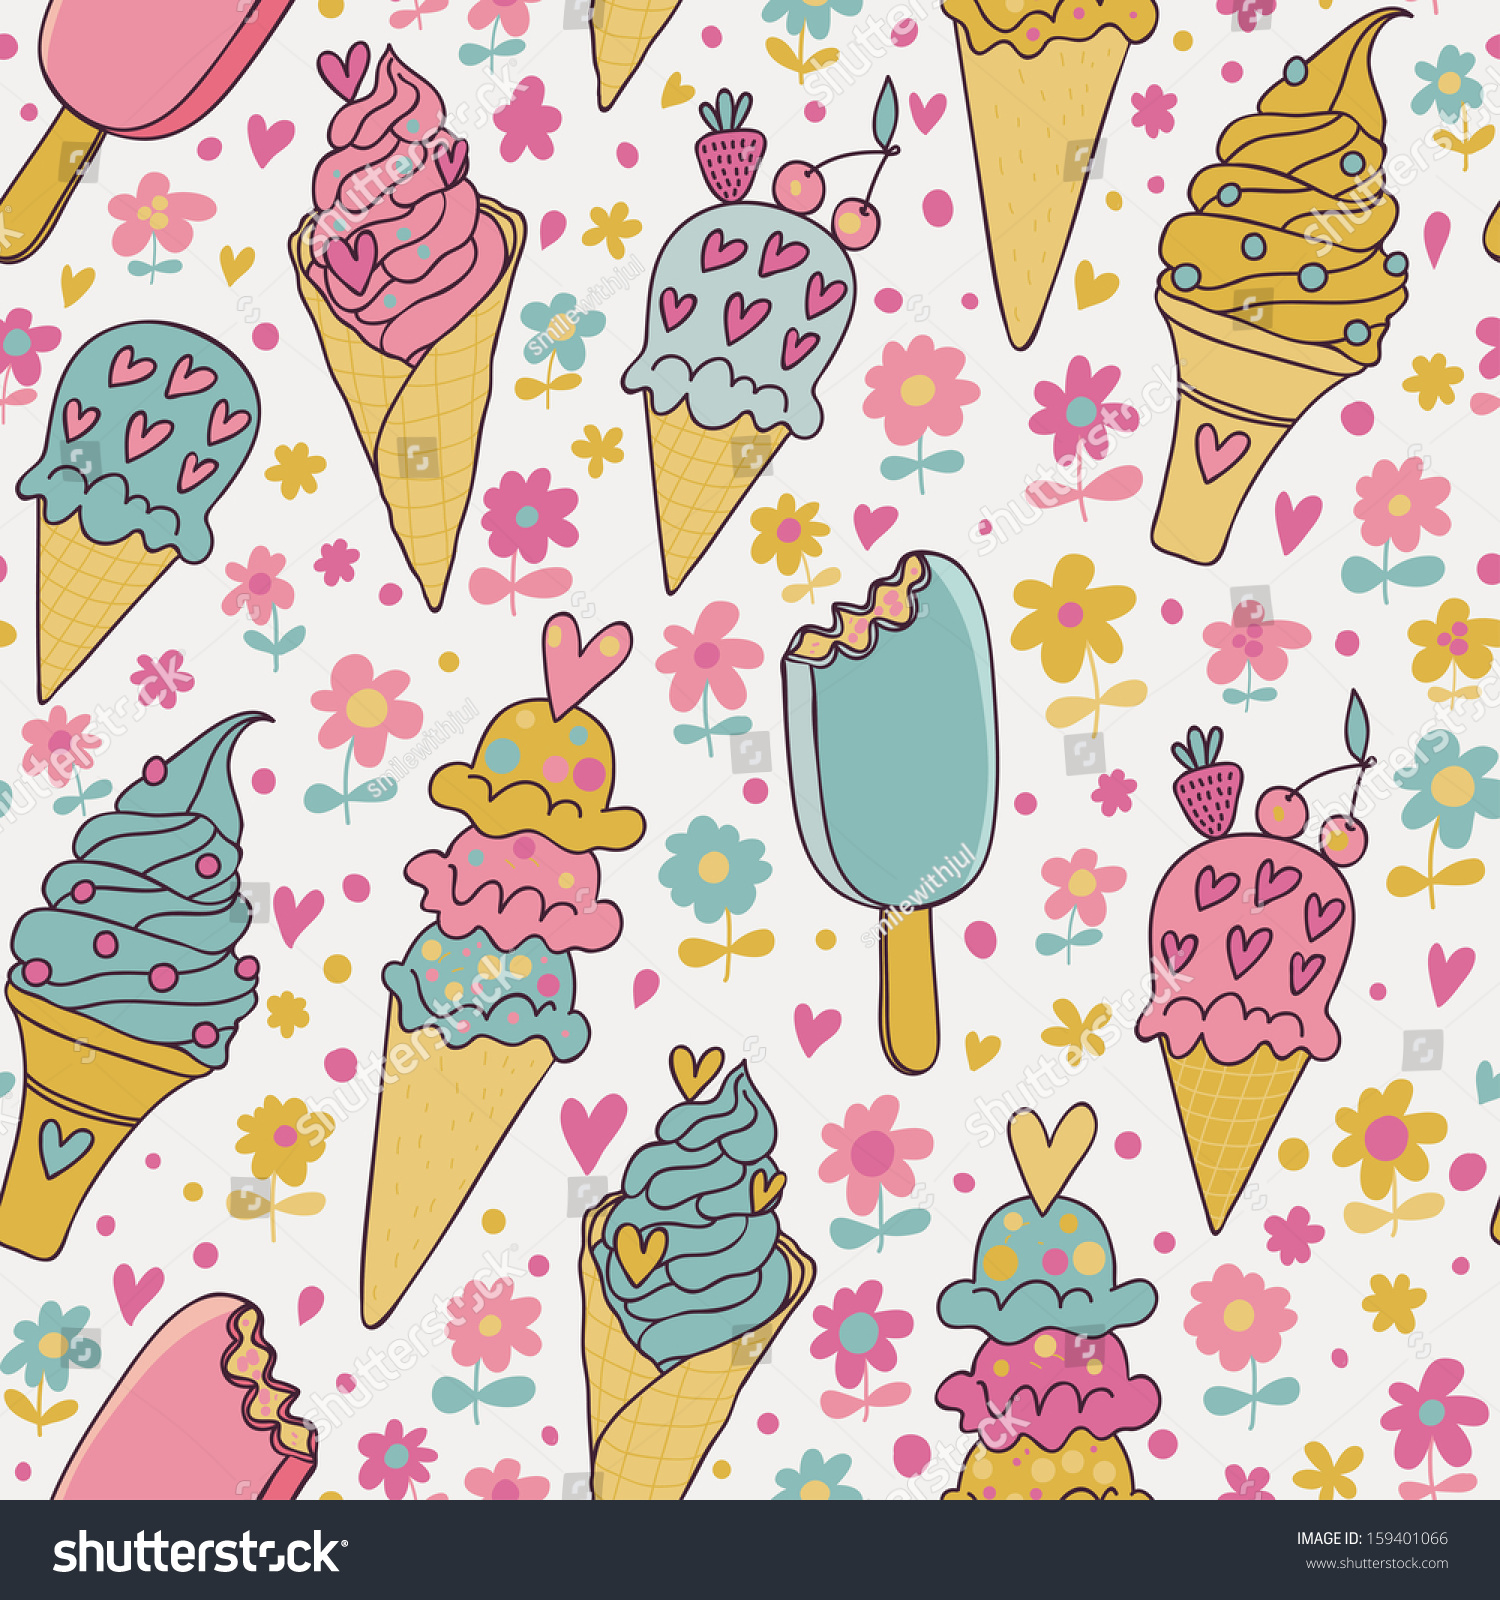 Cute Colorful Ice Cream Seamless Pattern Background: Tasty Seamless Pattern Made Of Cute Ice Cream In Pastel